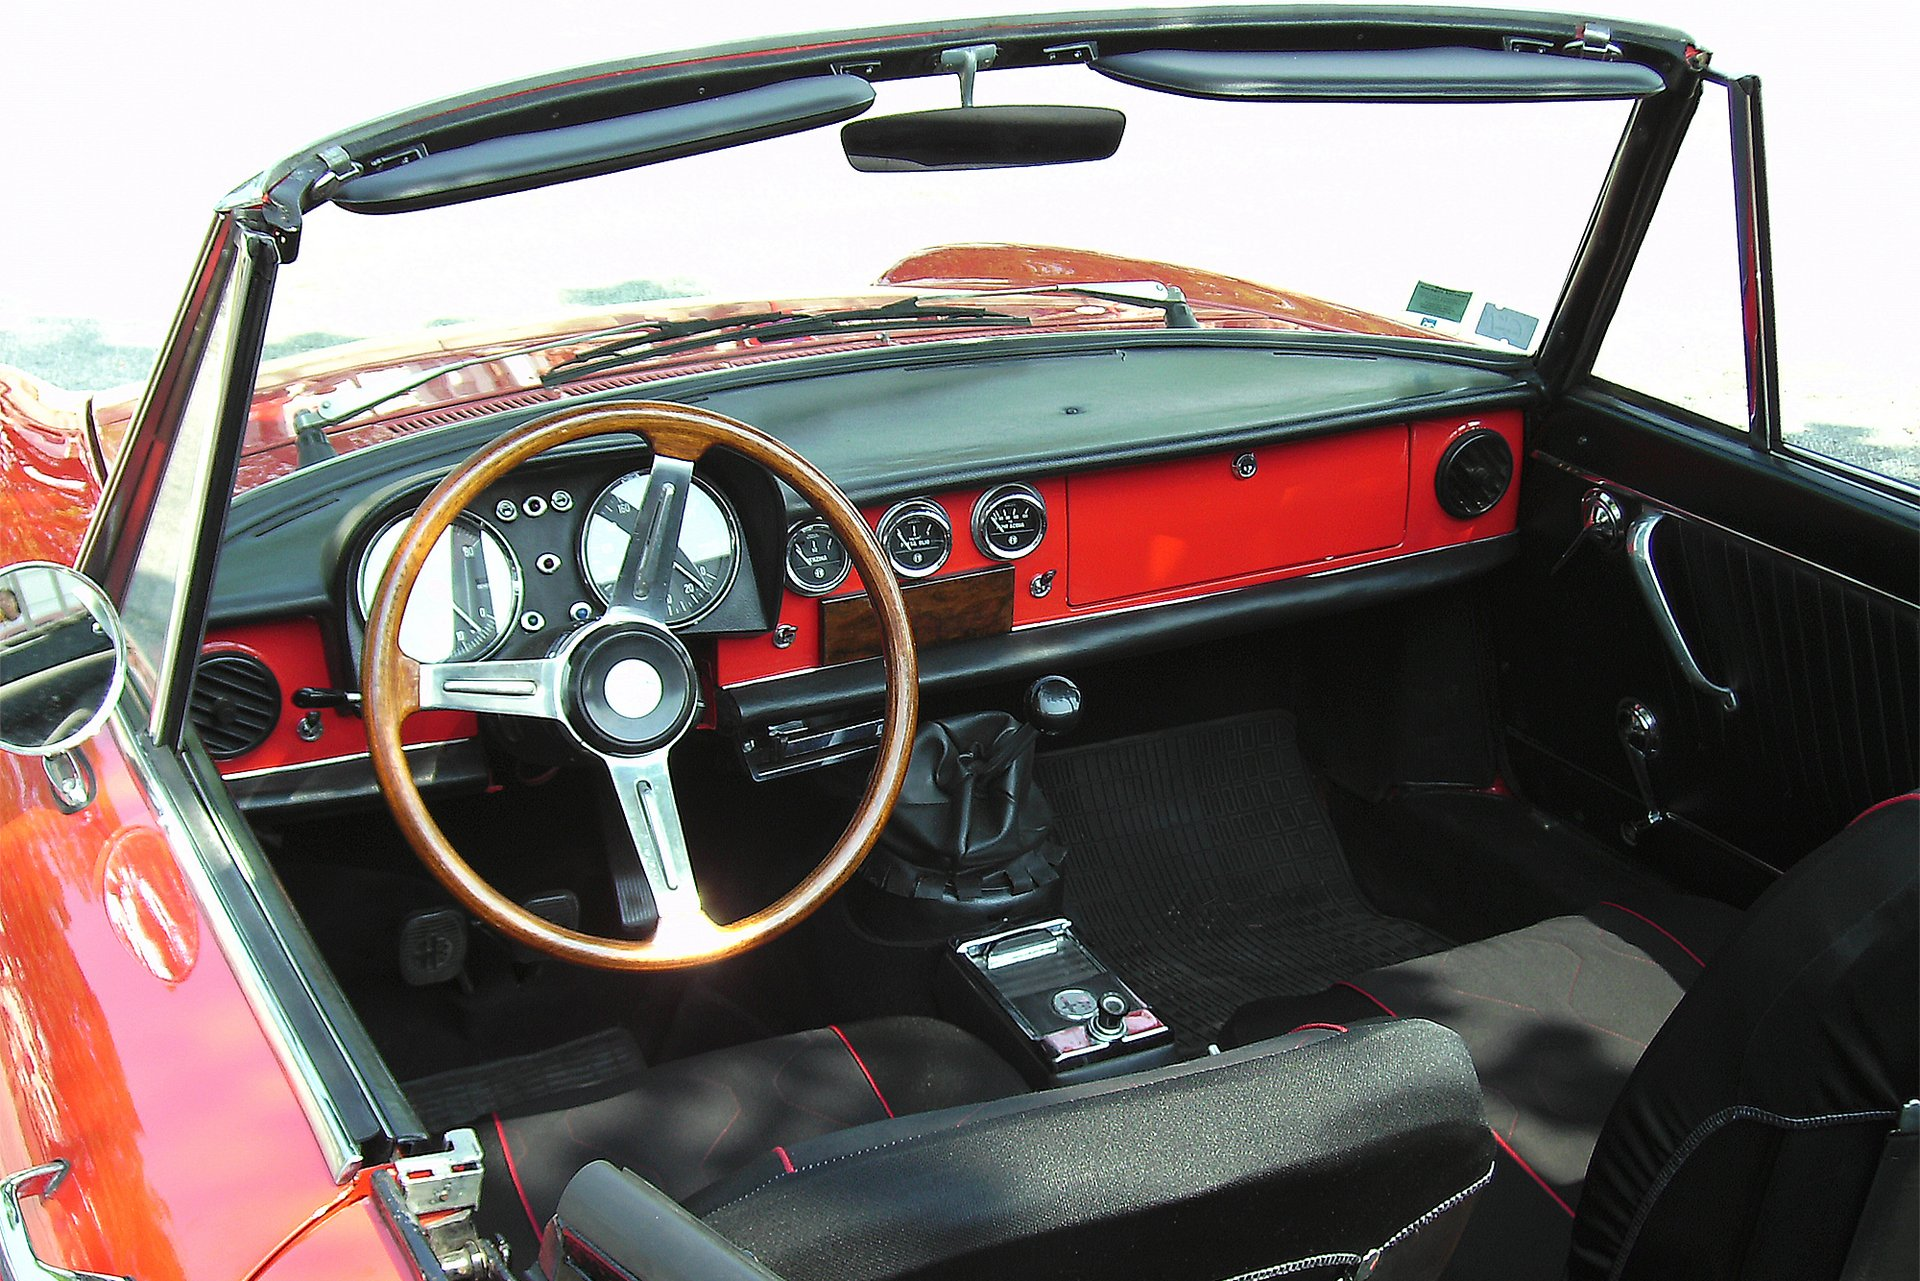 Wallpapers Widescreen Autos Deportivos as well P 0900c152800680c1 besides Guide D Achat Du Club Gtv 916 additionally Pictures Of 1984 Mustang Gt 350 Anniversary Edition 6a4addc9d1dc4c7c furthermore 1994 Geo Metro Xfi White For Sale On Craigslist. on alfa romeo spider 1994